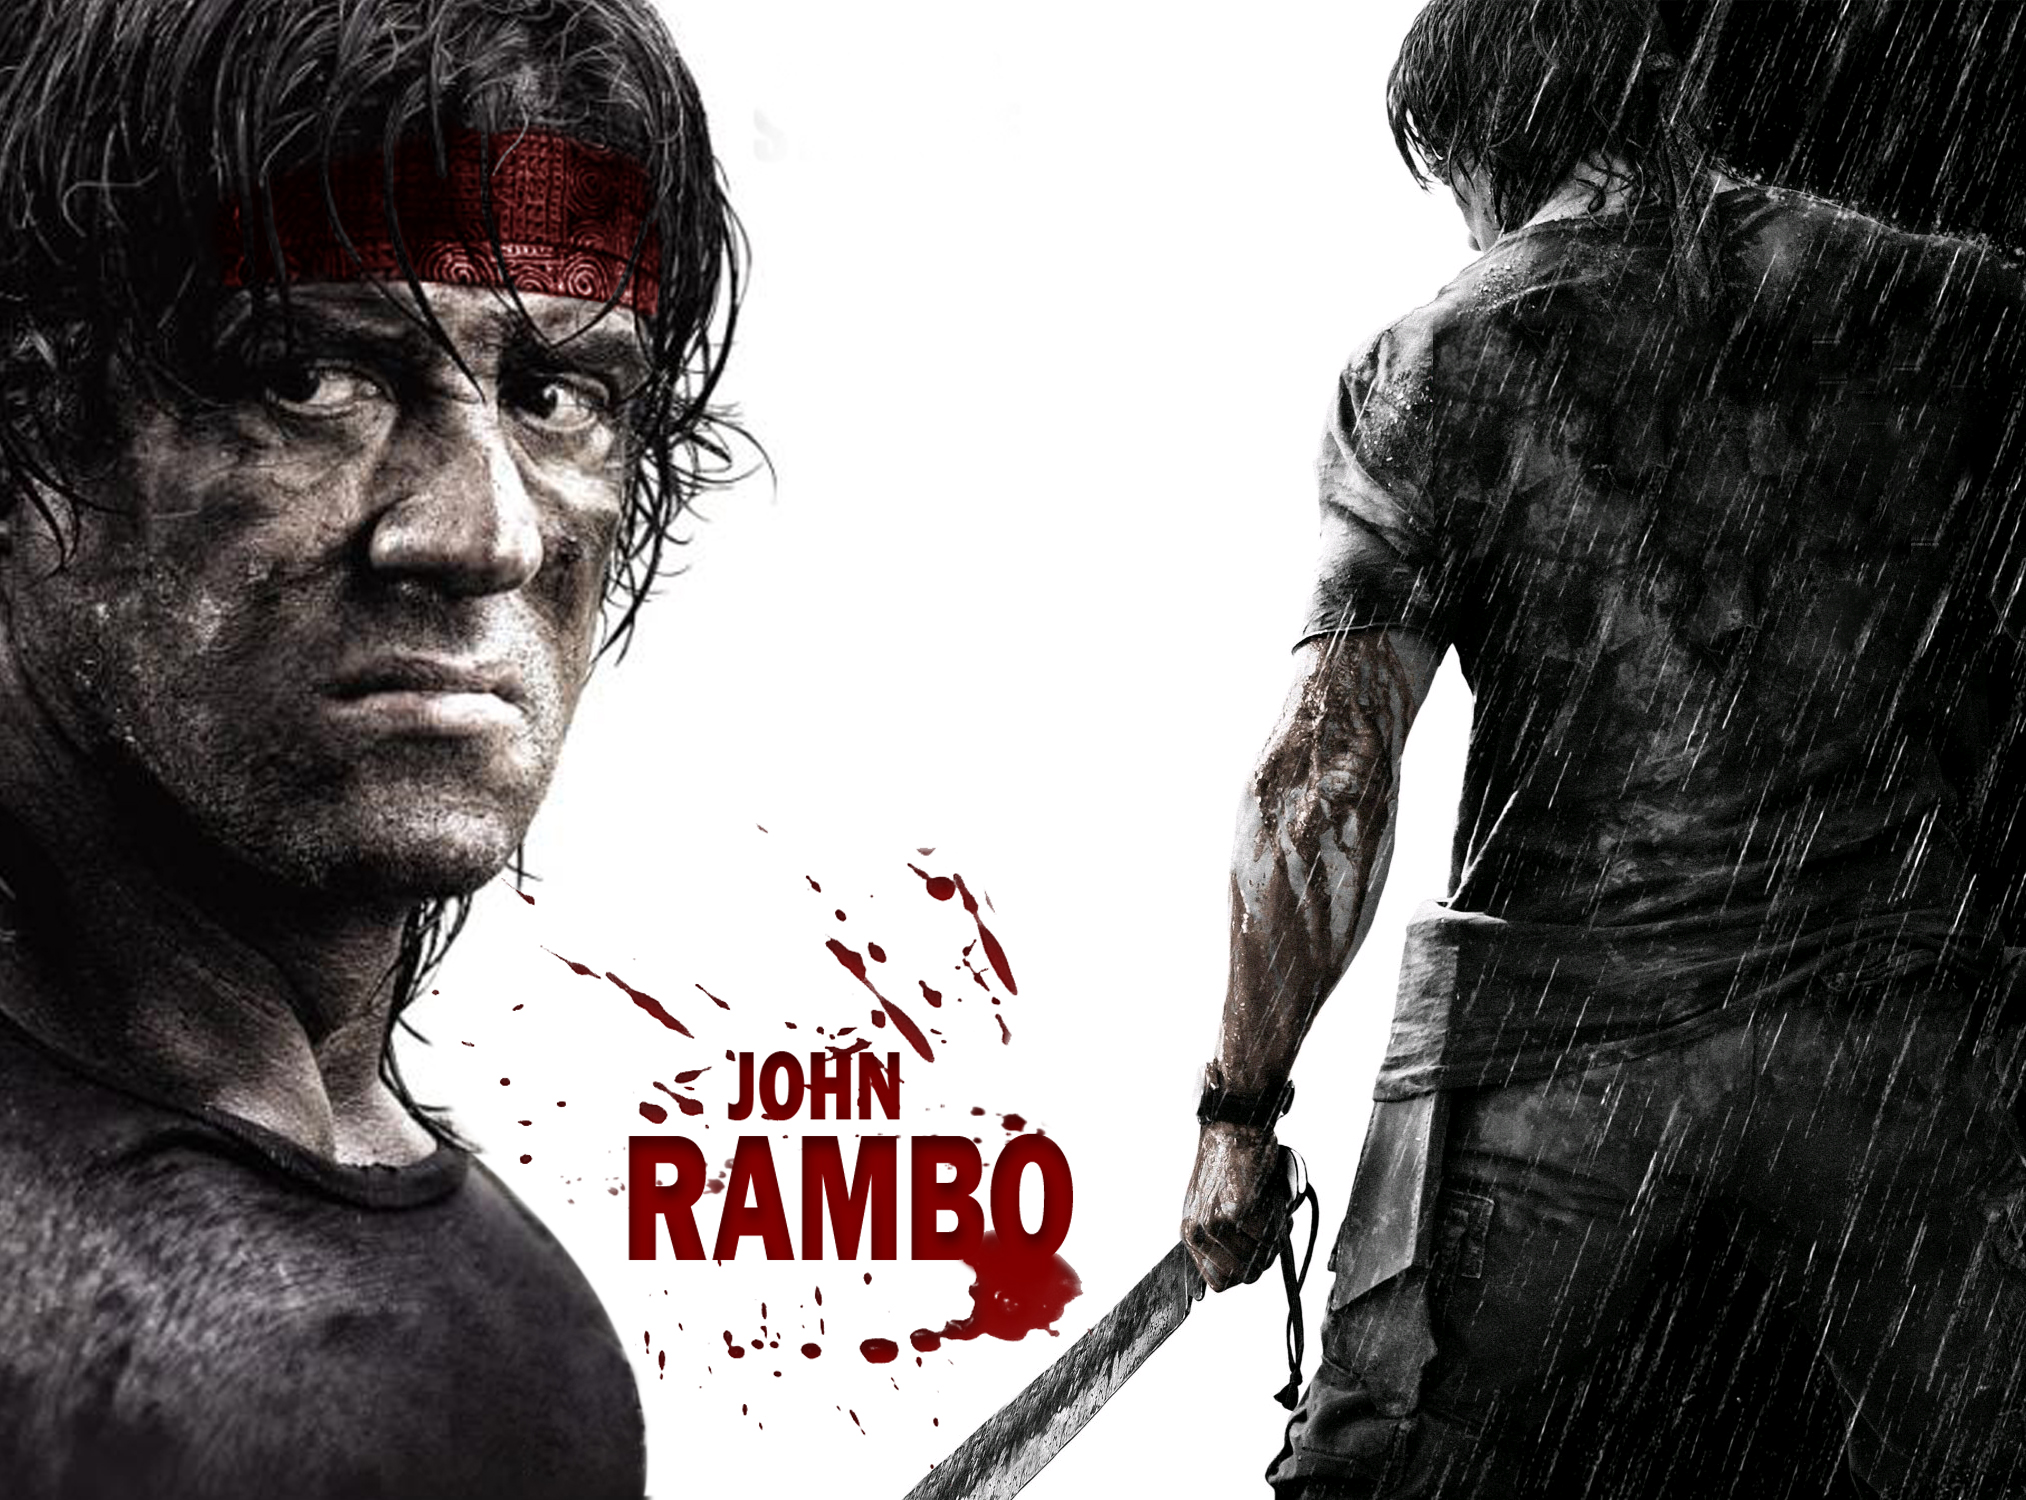 rambo wallpaper hd,movie,fictional character,flesh,games